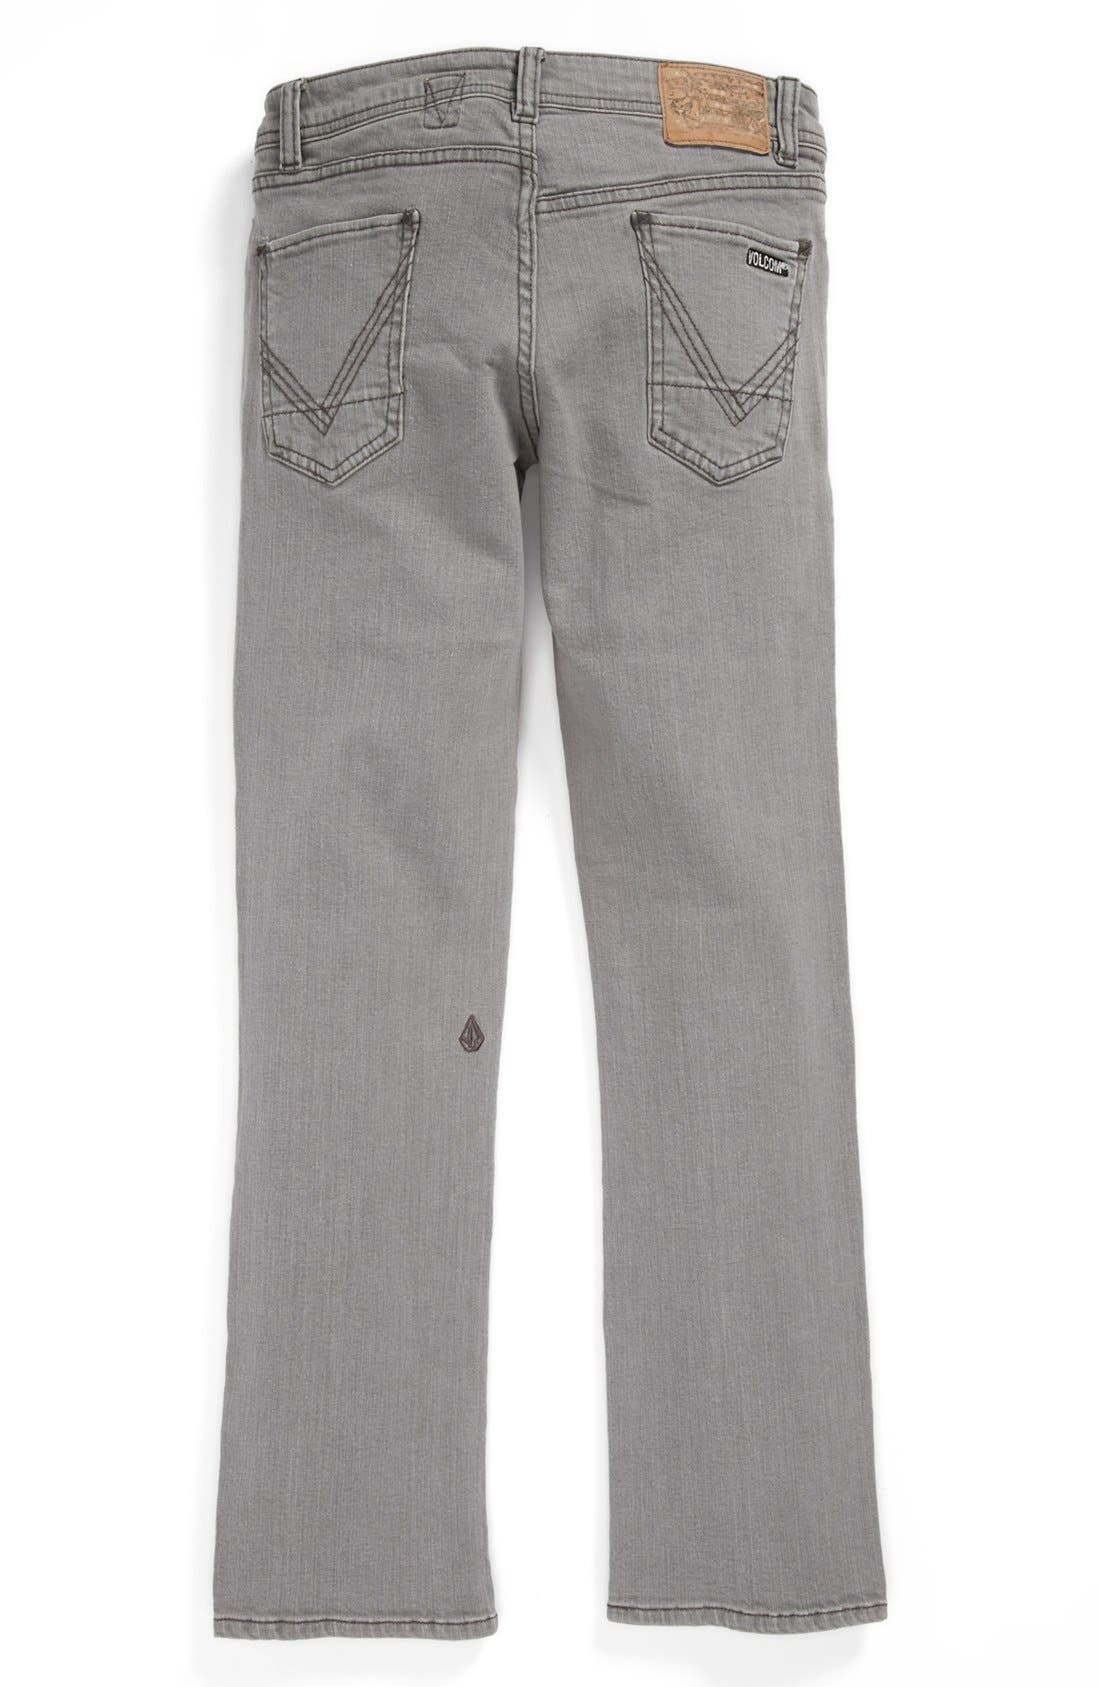 Alternate Image 1 Selected - Volcom 'Vorta' Jeans (Big Boys)